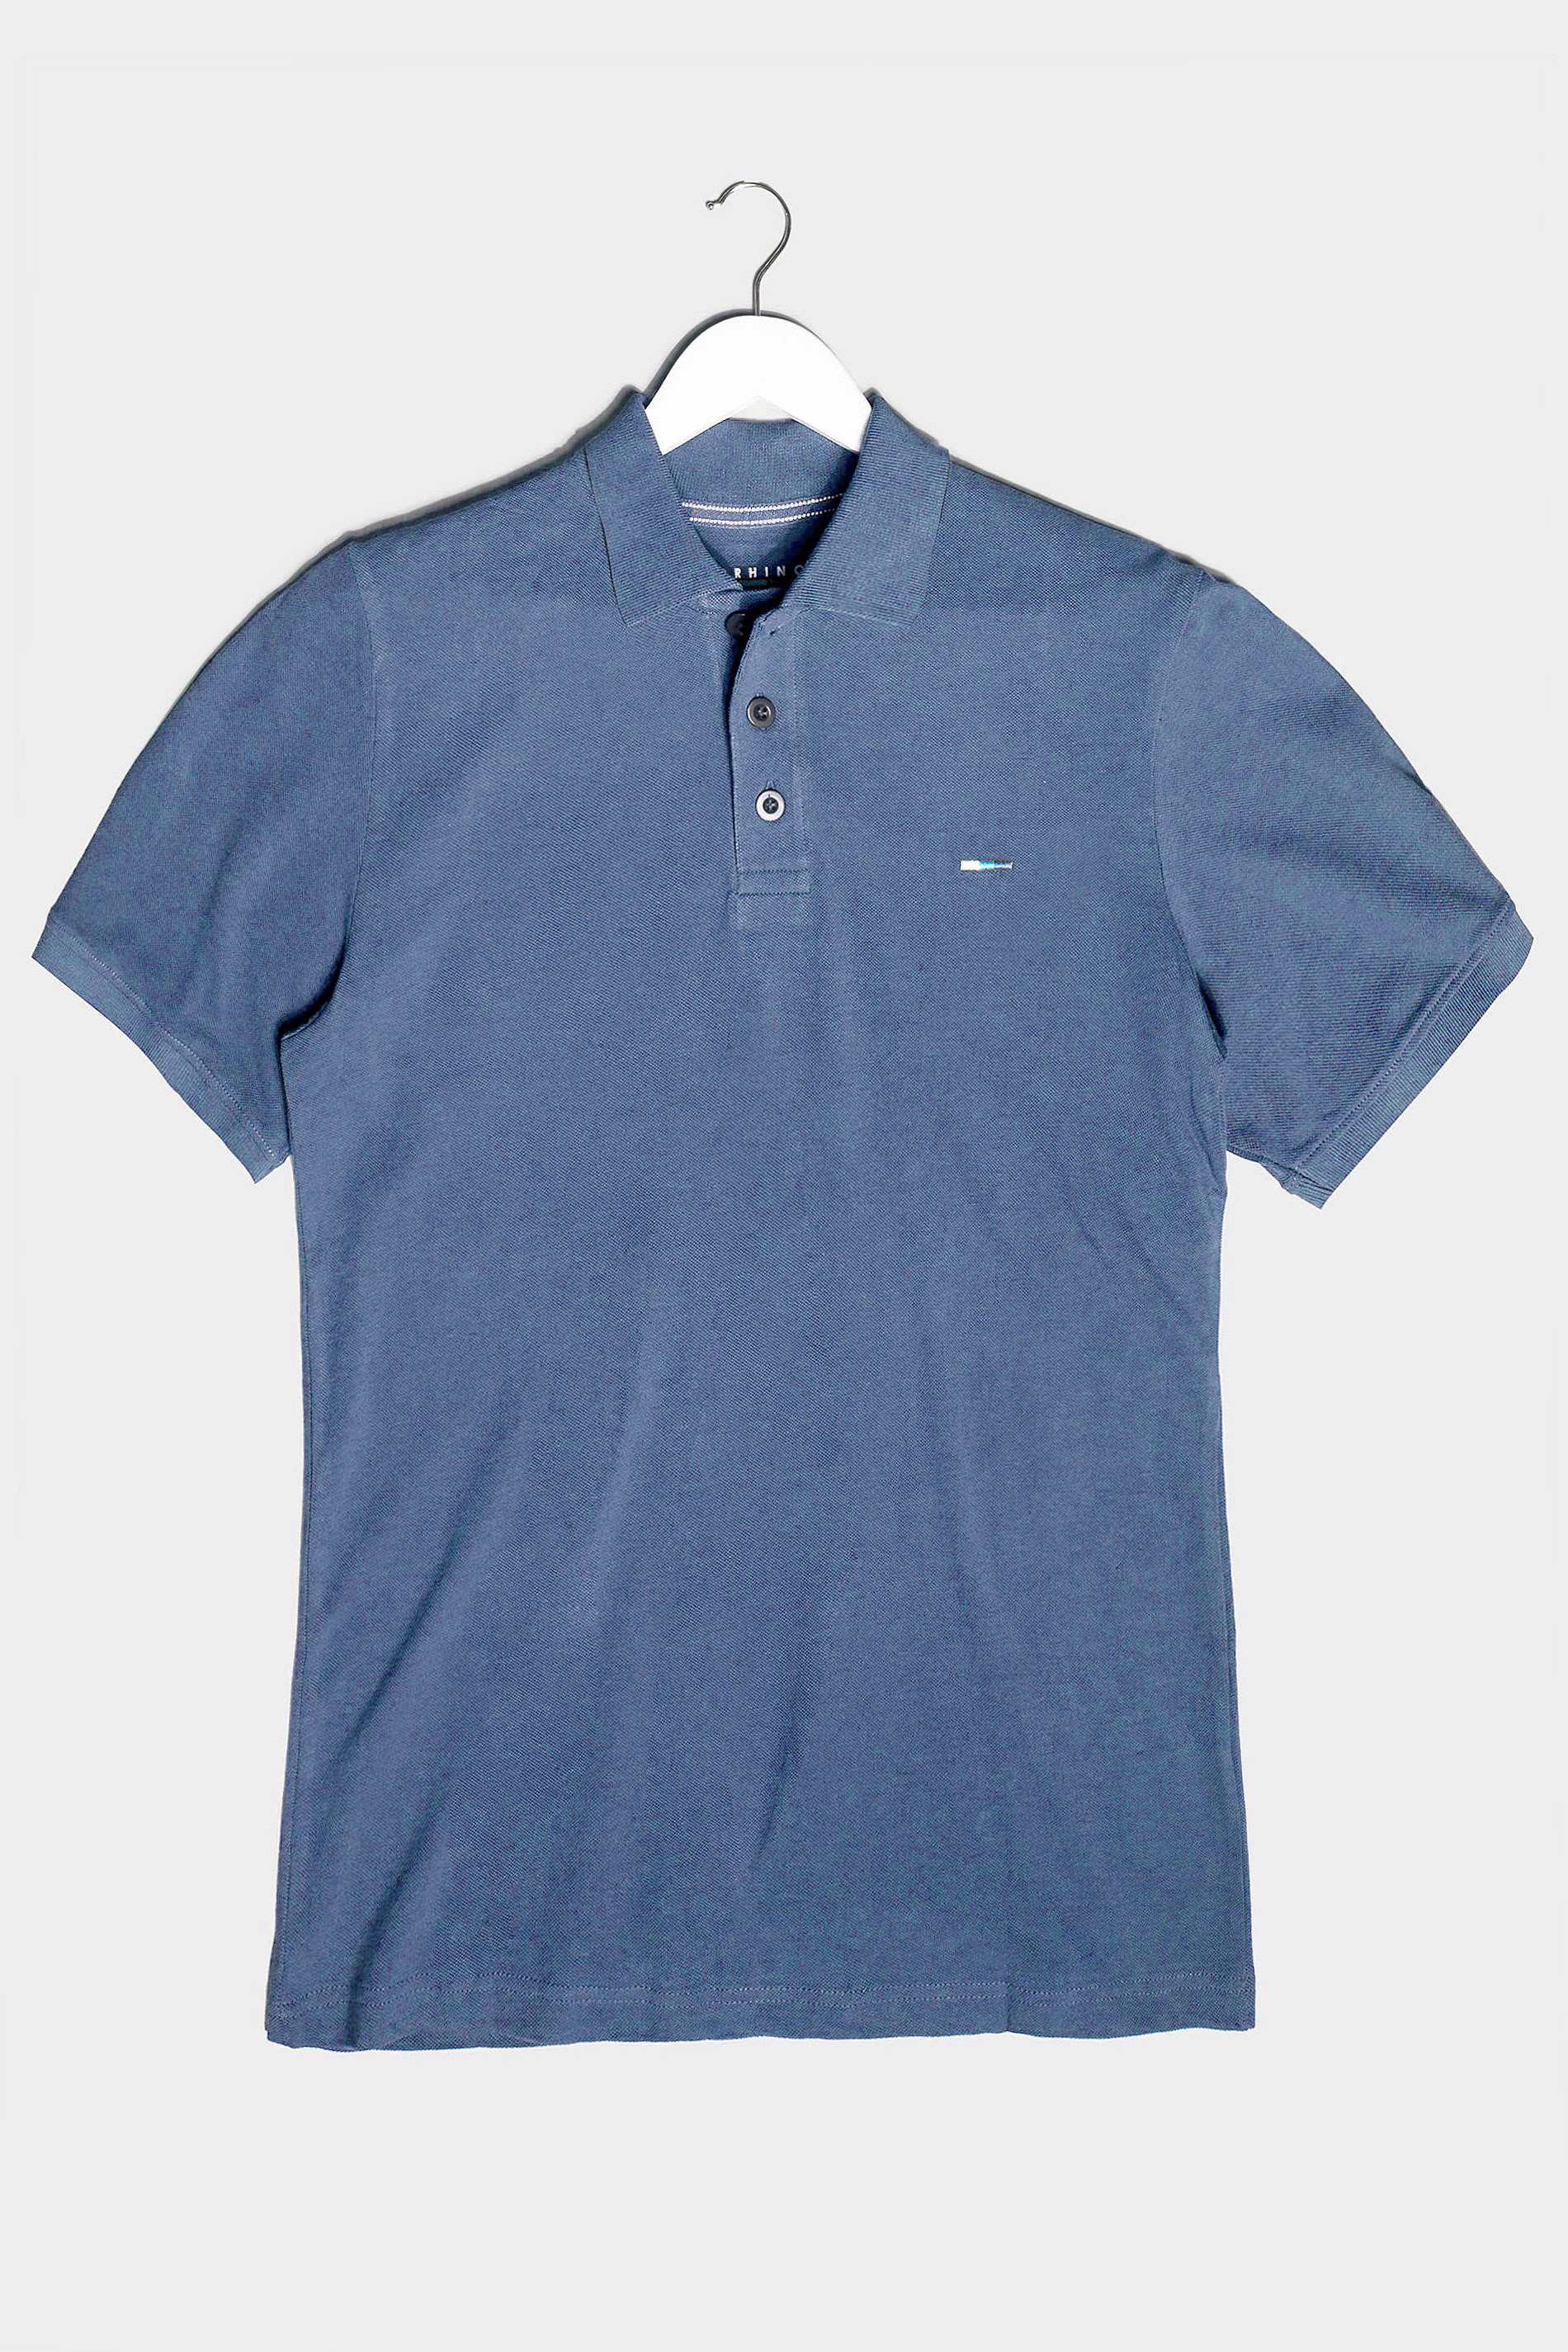 BadRhino Blue Washed Polo Shirt